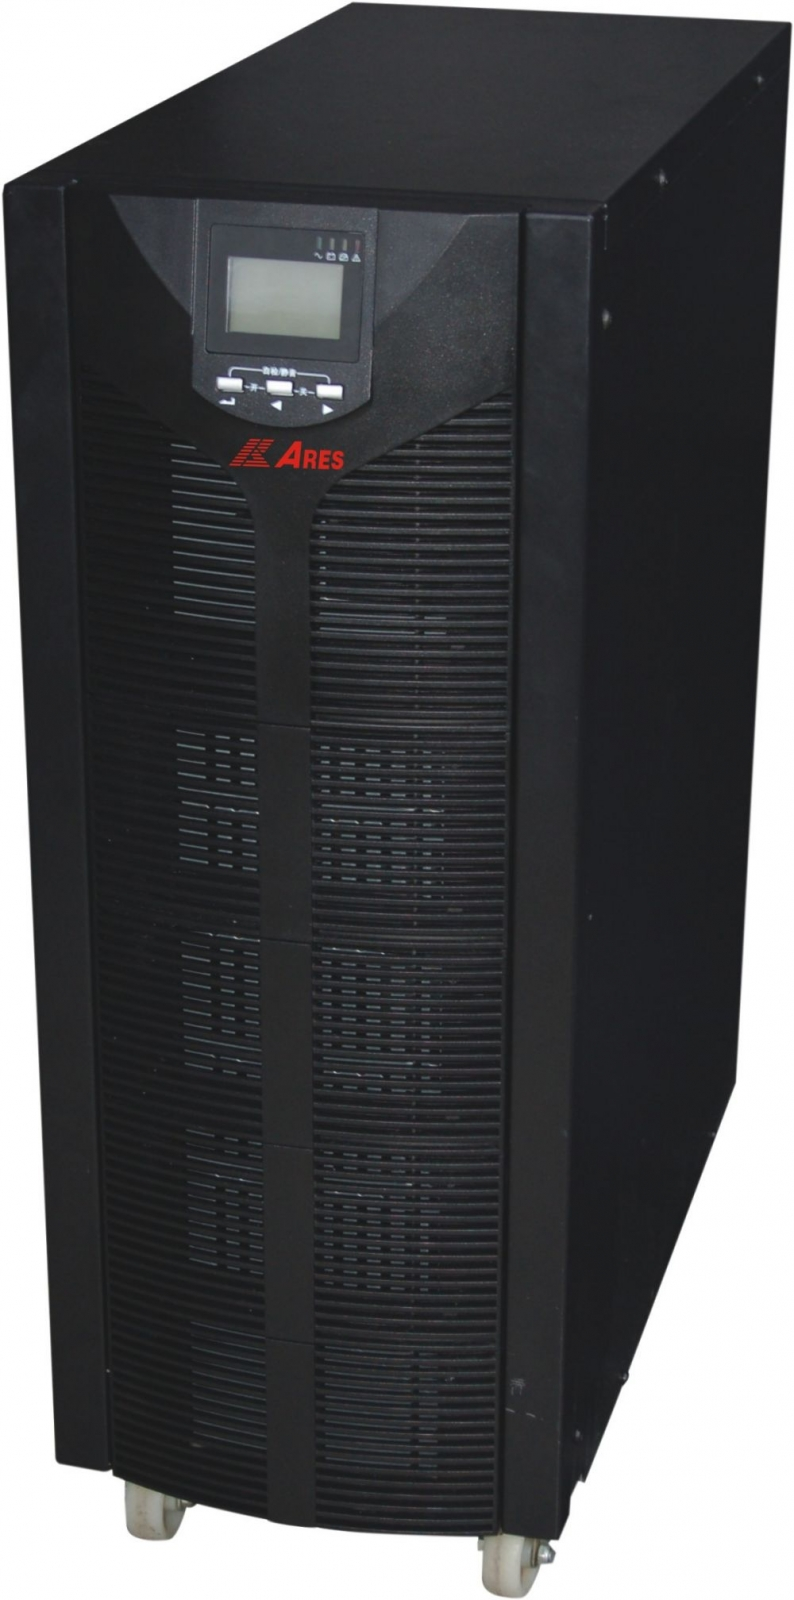 UPS 10KVA Ares AR9010II (9kw) Online Tower